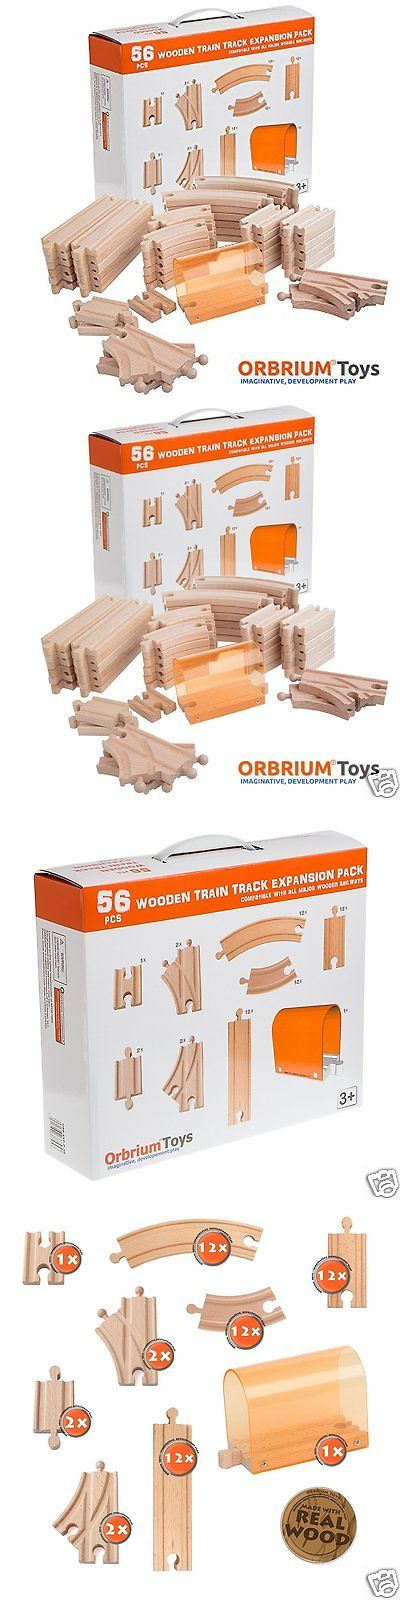 Other Thomas Games and Toys 22721: Train Tracks Wooden Thomas And Friends Railway Pieces Straight Curved Gauged Set -> BUY IT NOW ONLY: $36.95 on eBay!